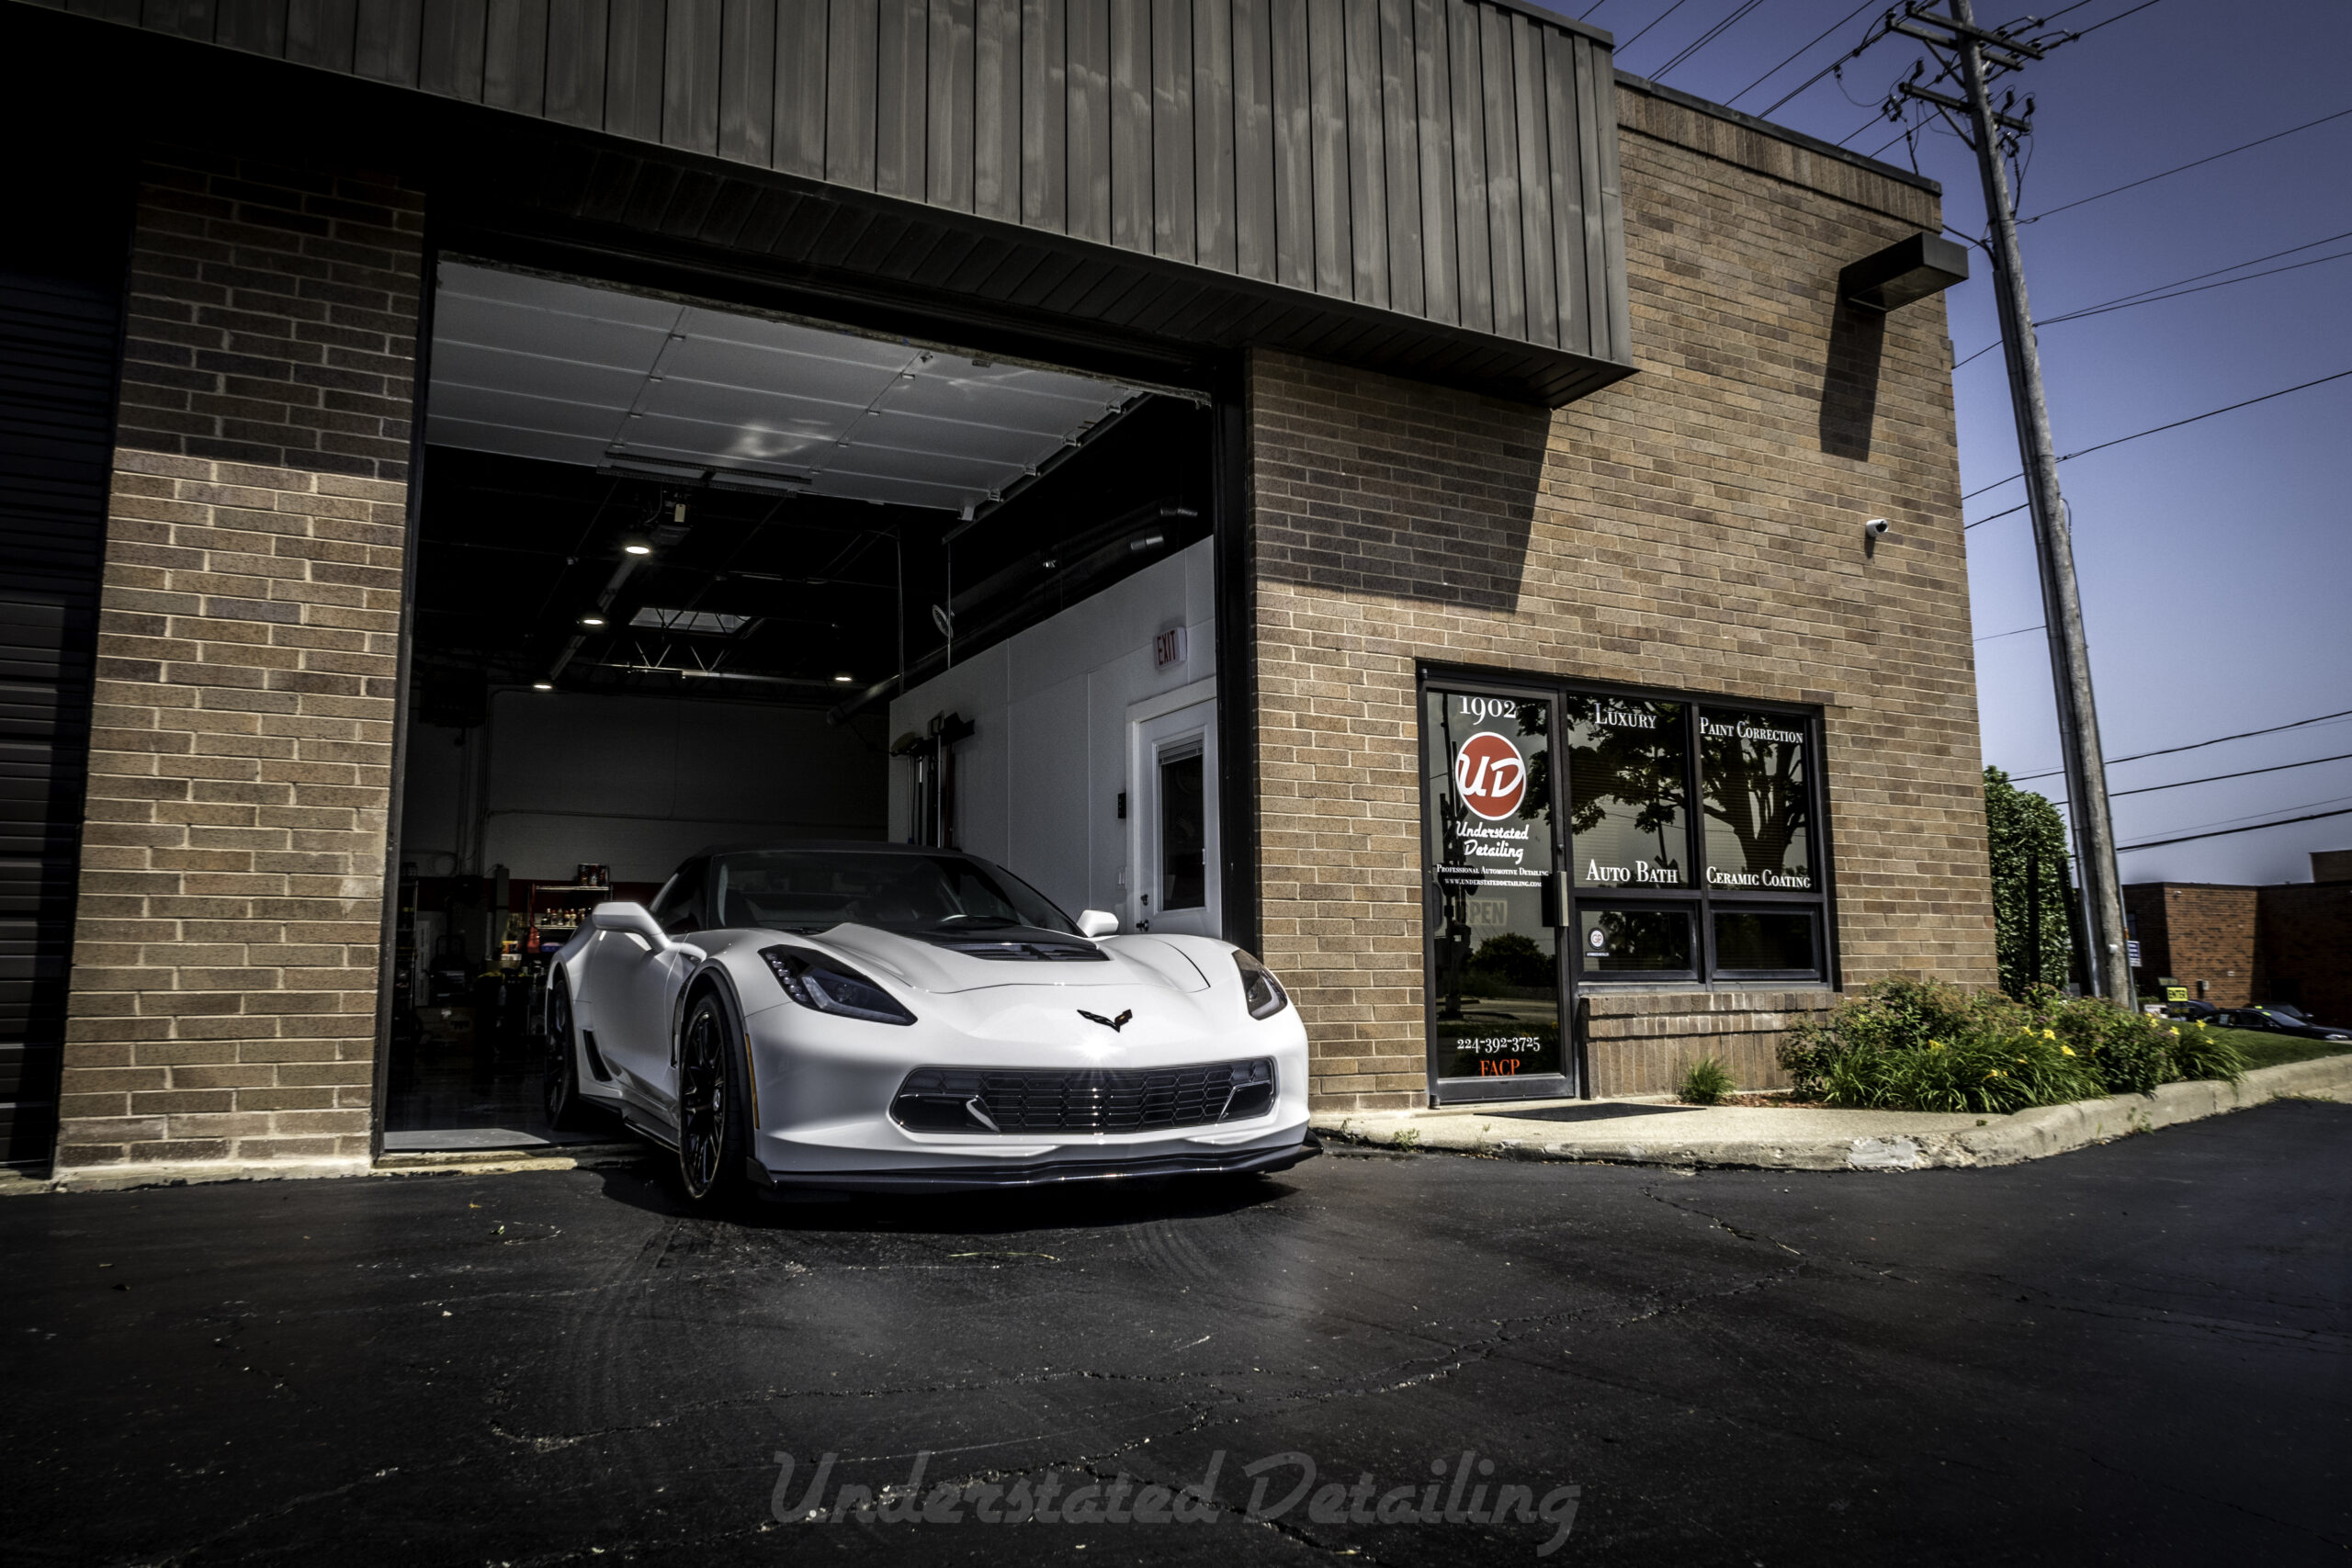 Tony C7 Vette and shop